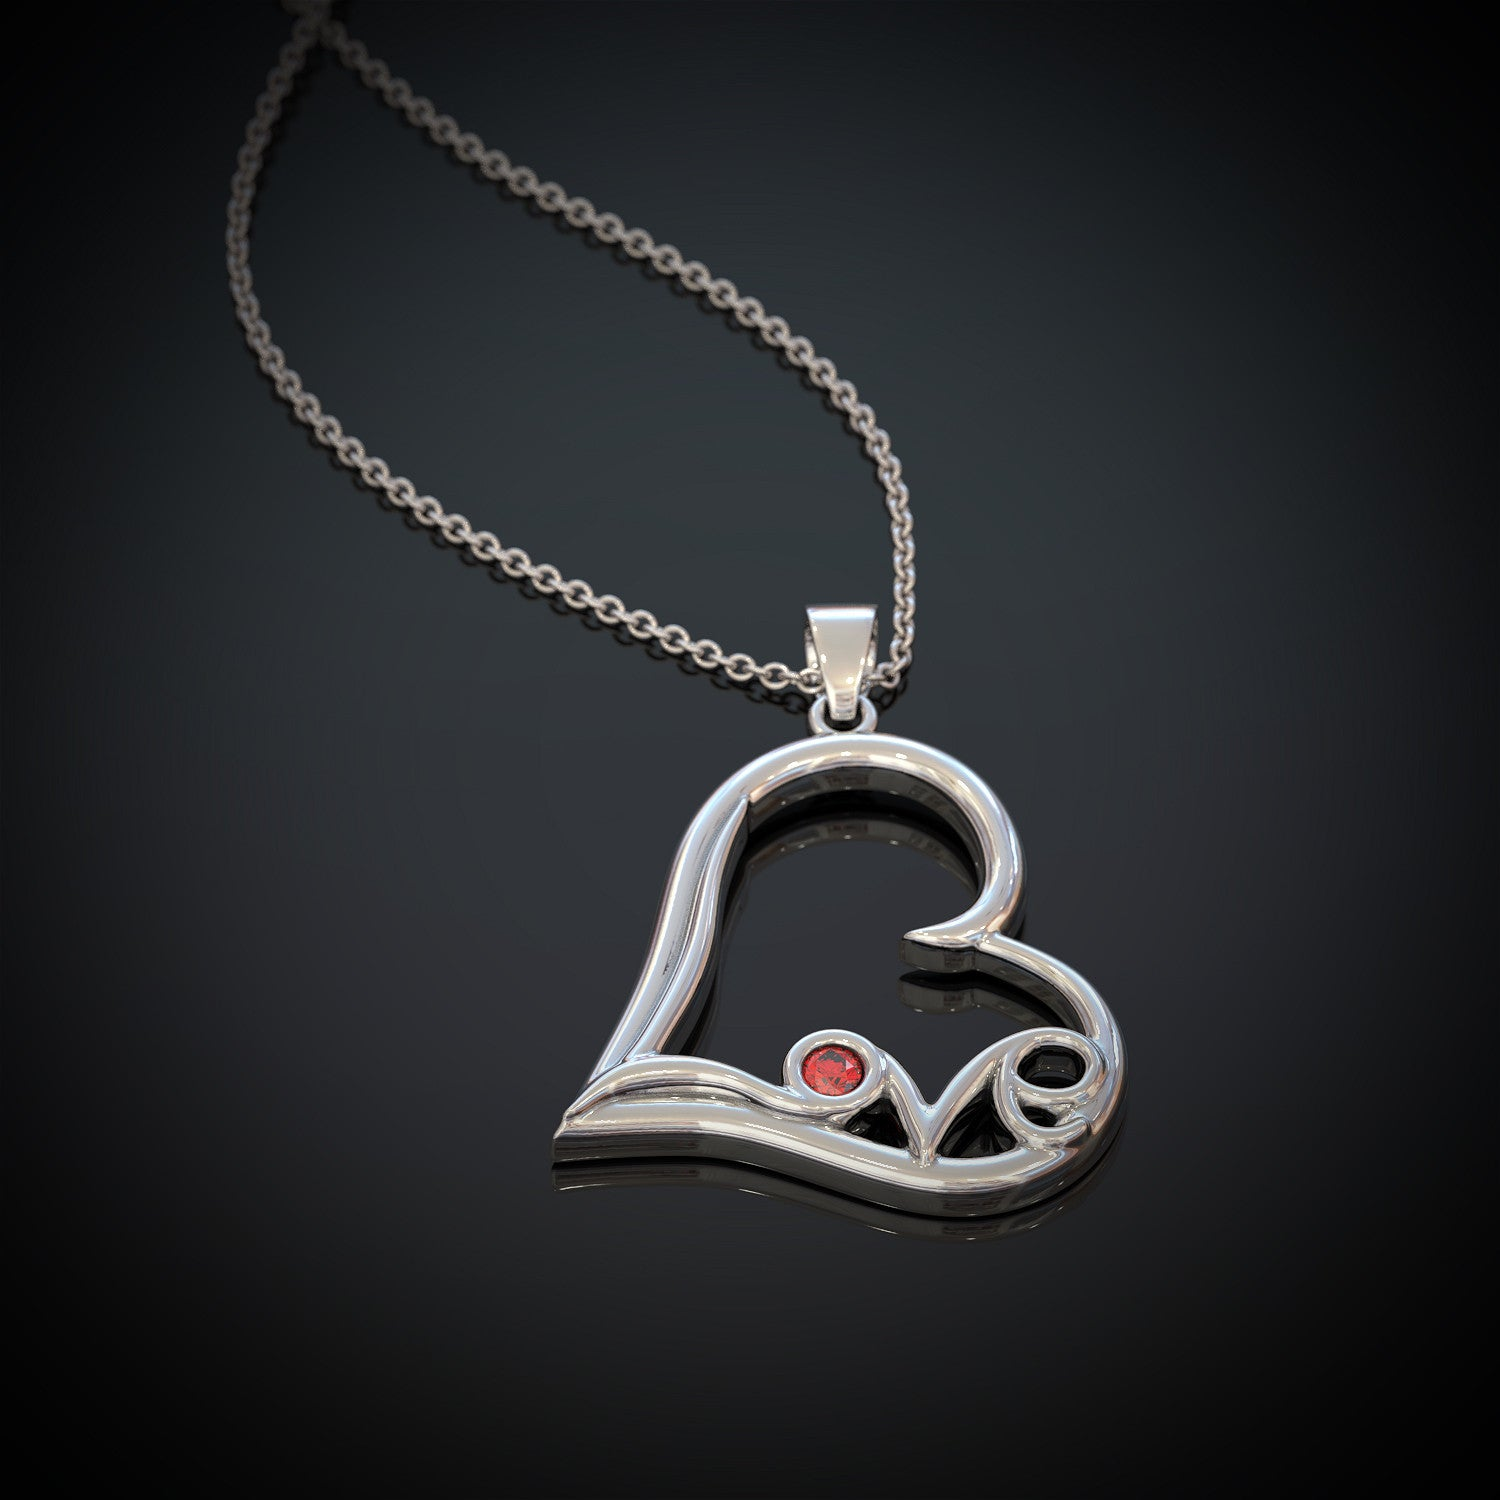 Love Heart Pendant Necklace for Women